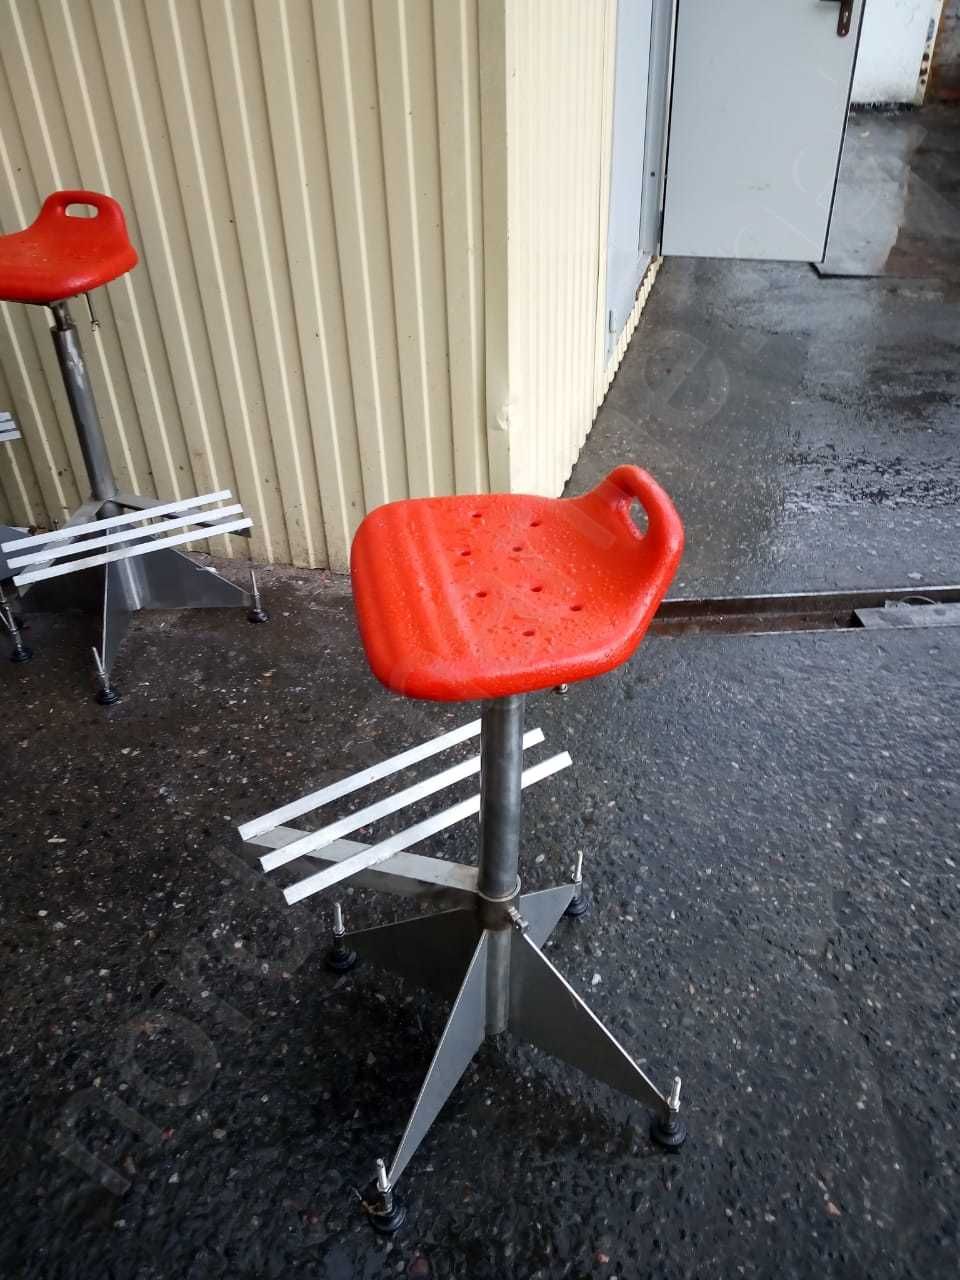 Chairs for working stations